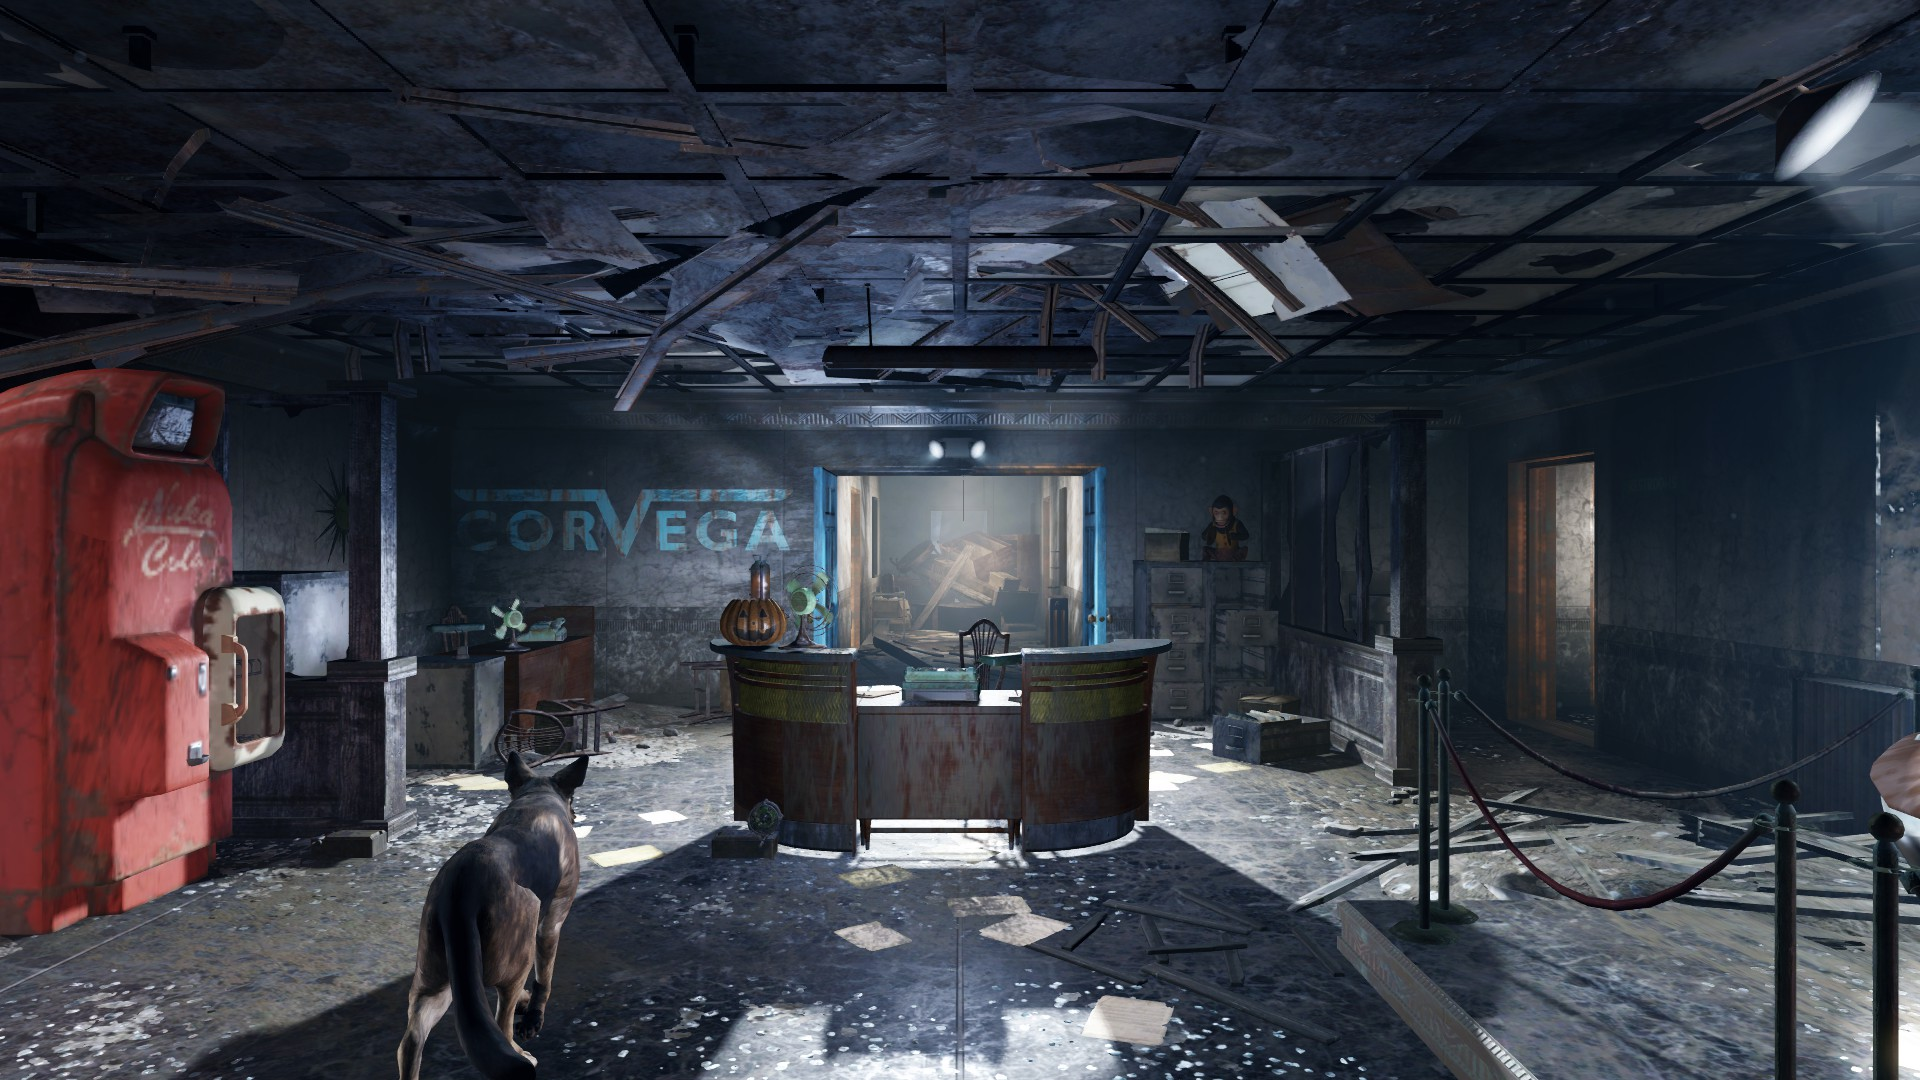 Corvega Assembly Plant Fallout Wiki Fandom Powered By Wikia Power Layout Images